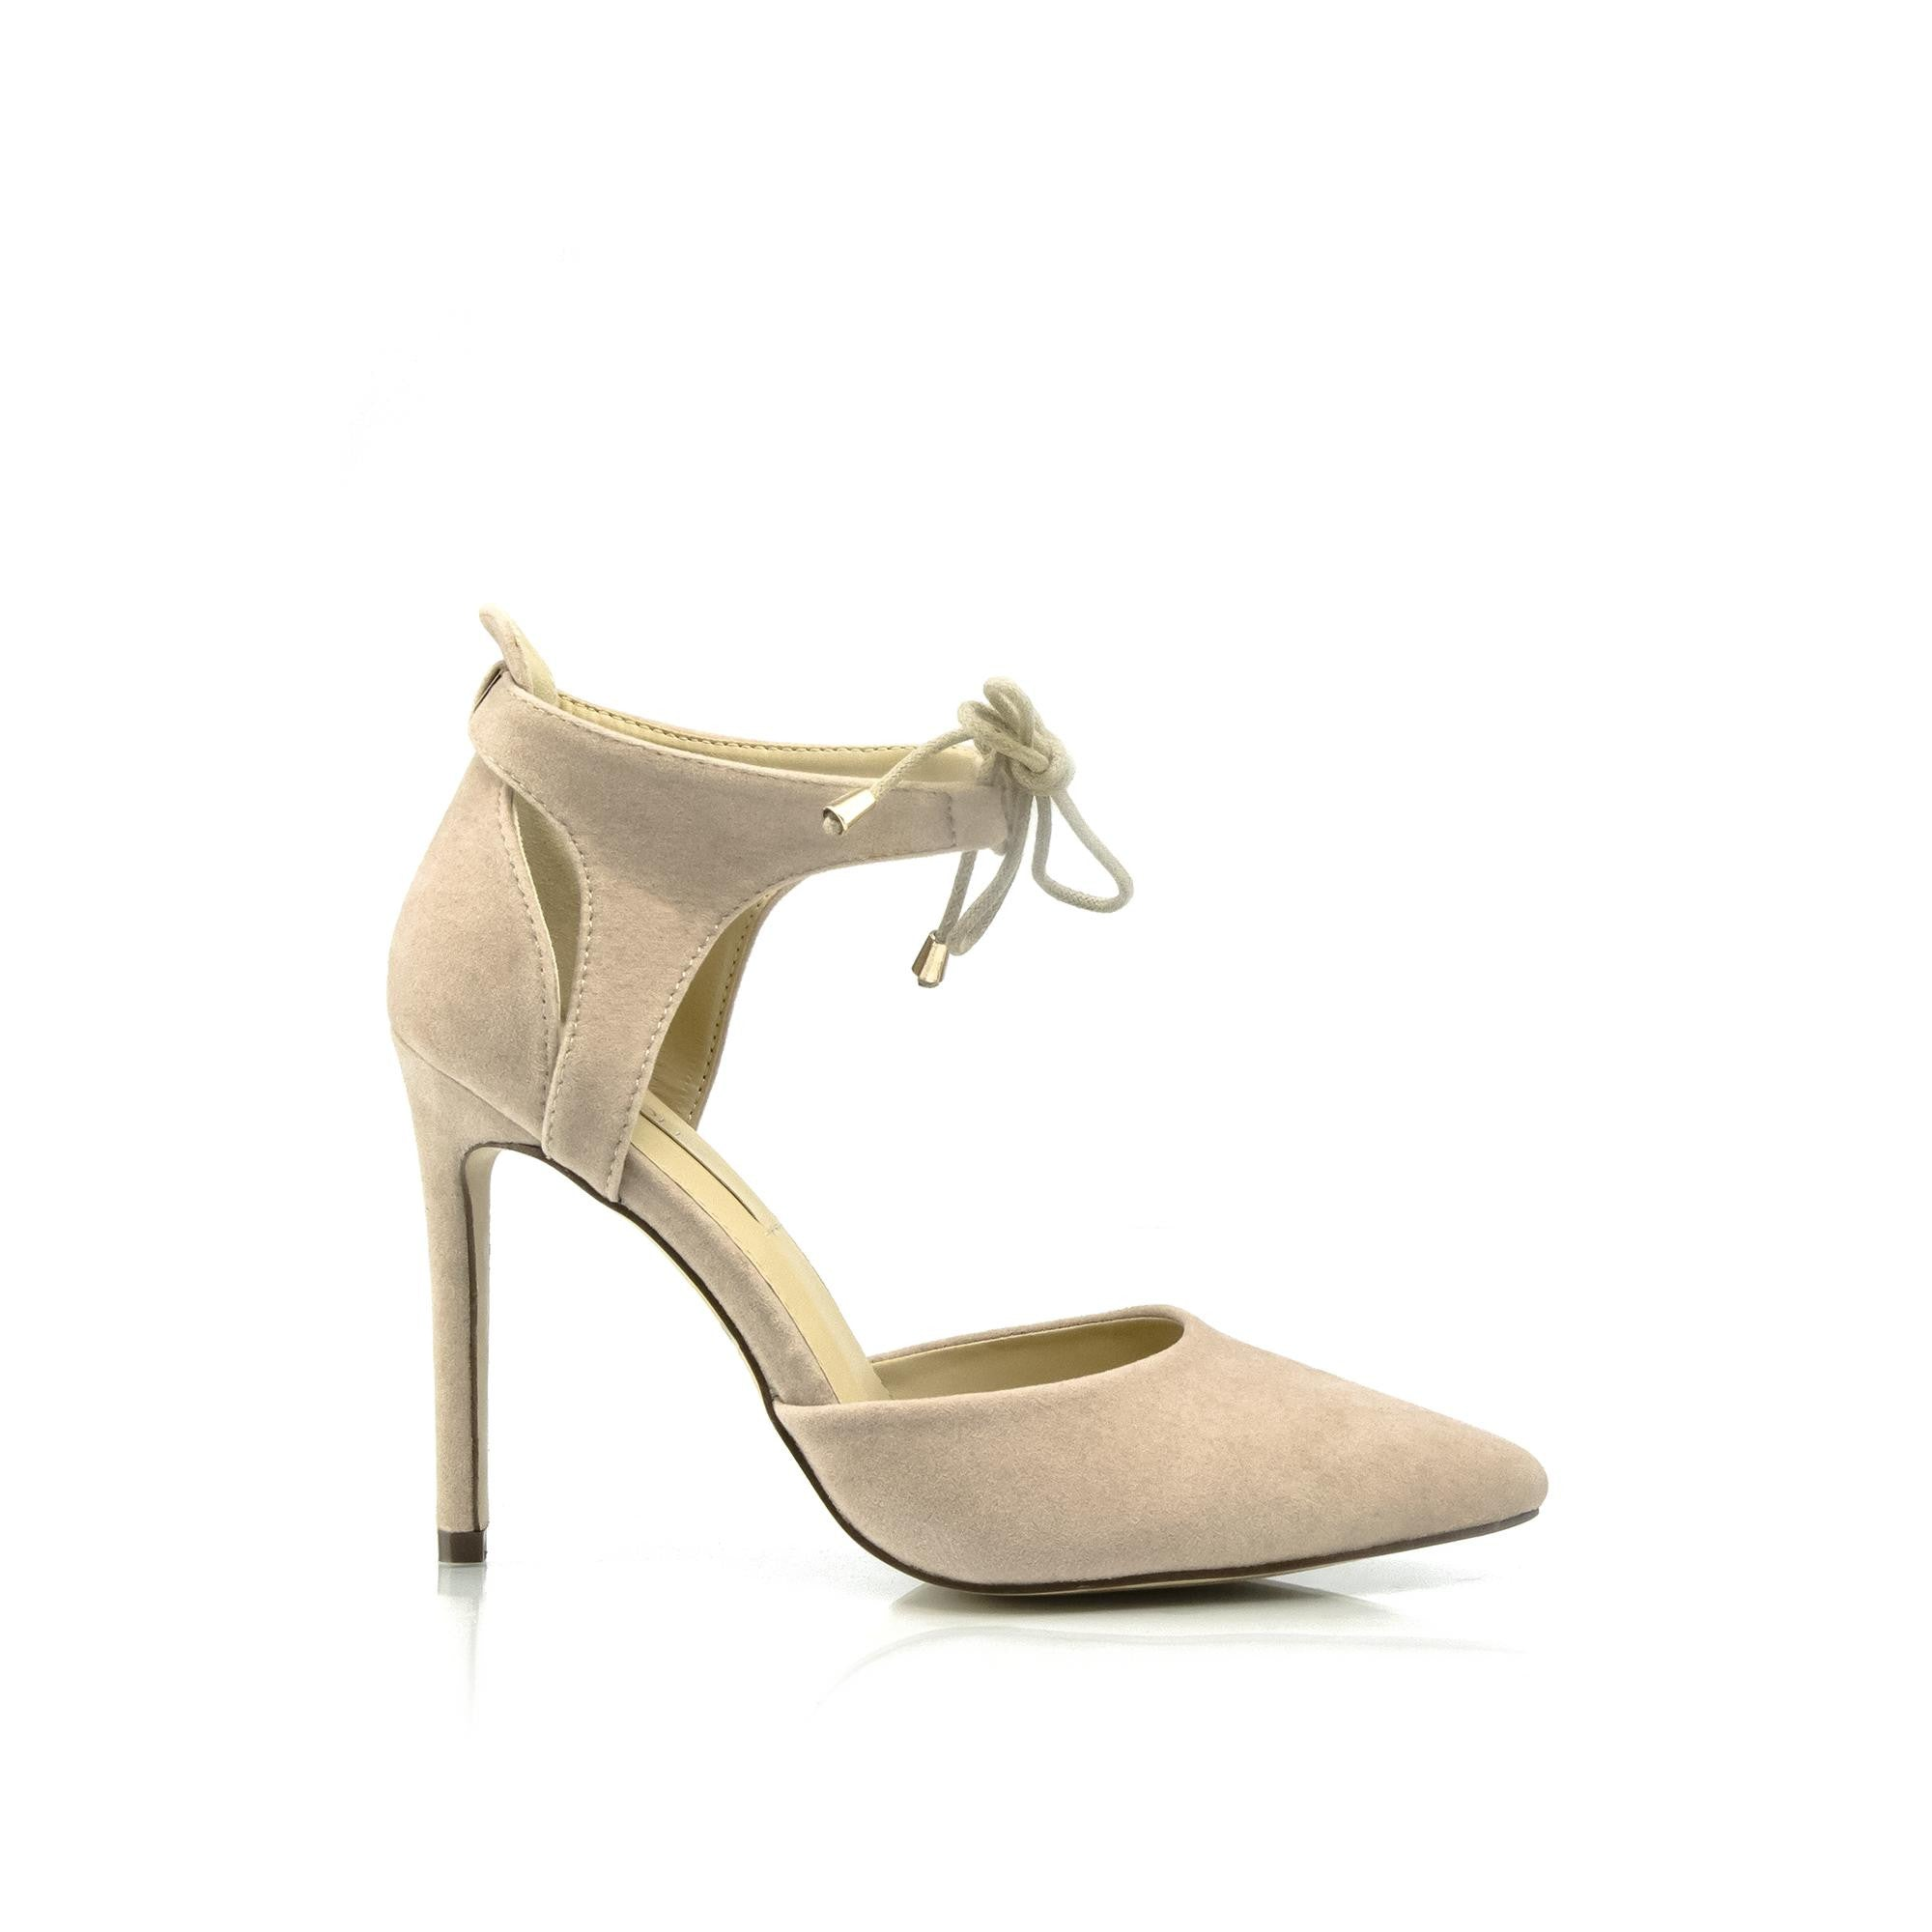 ROCHELLE Pointed Toe Heel